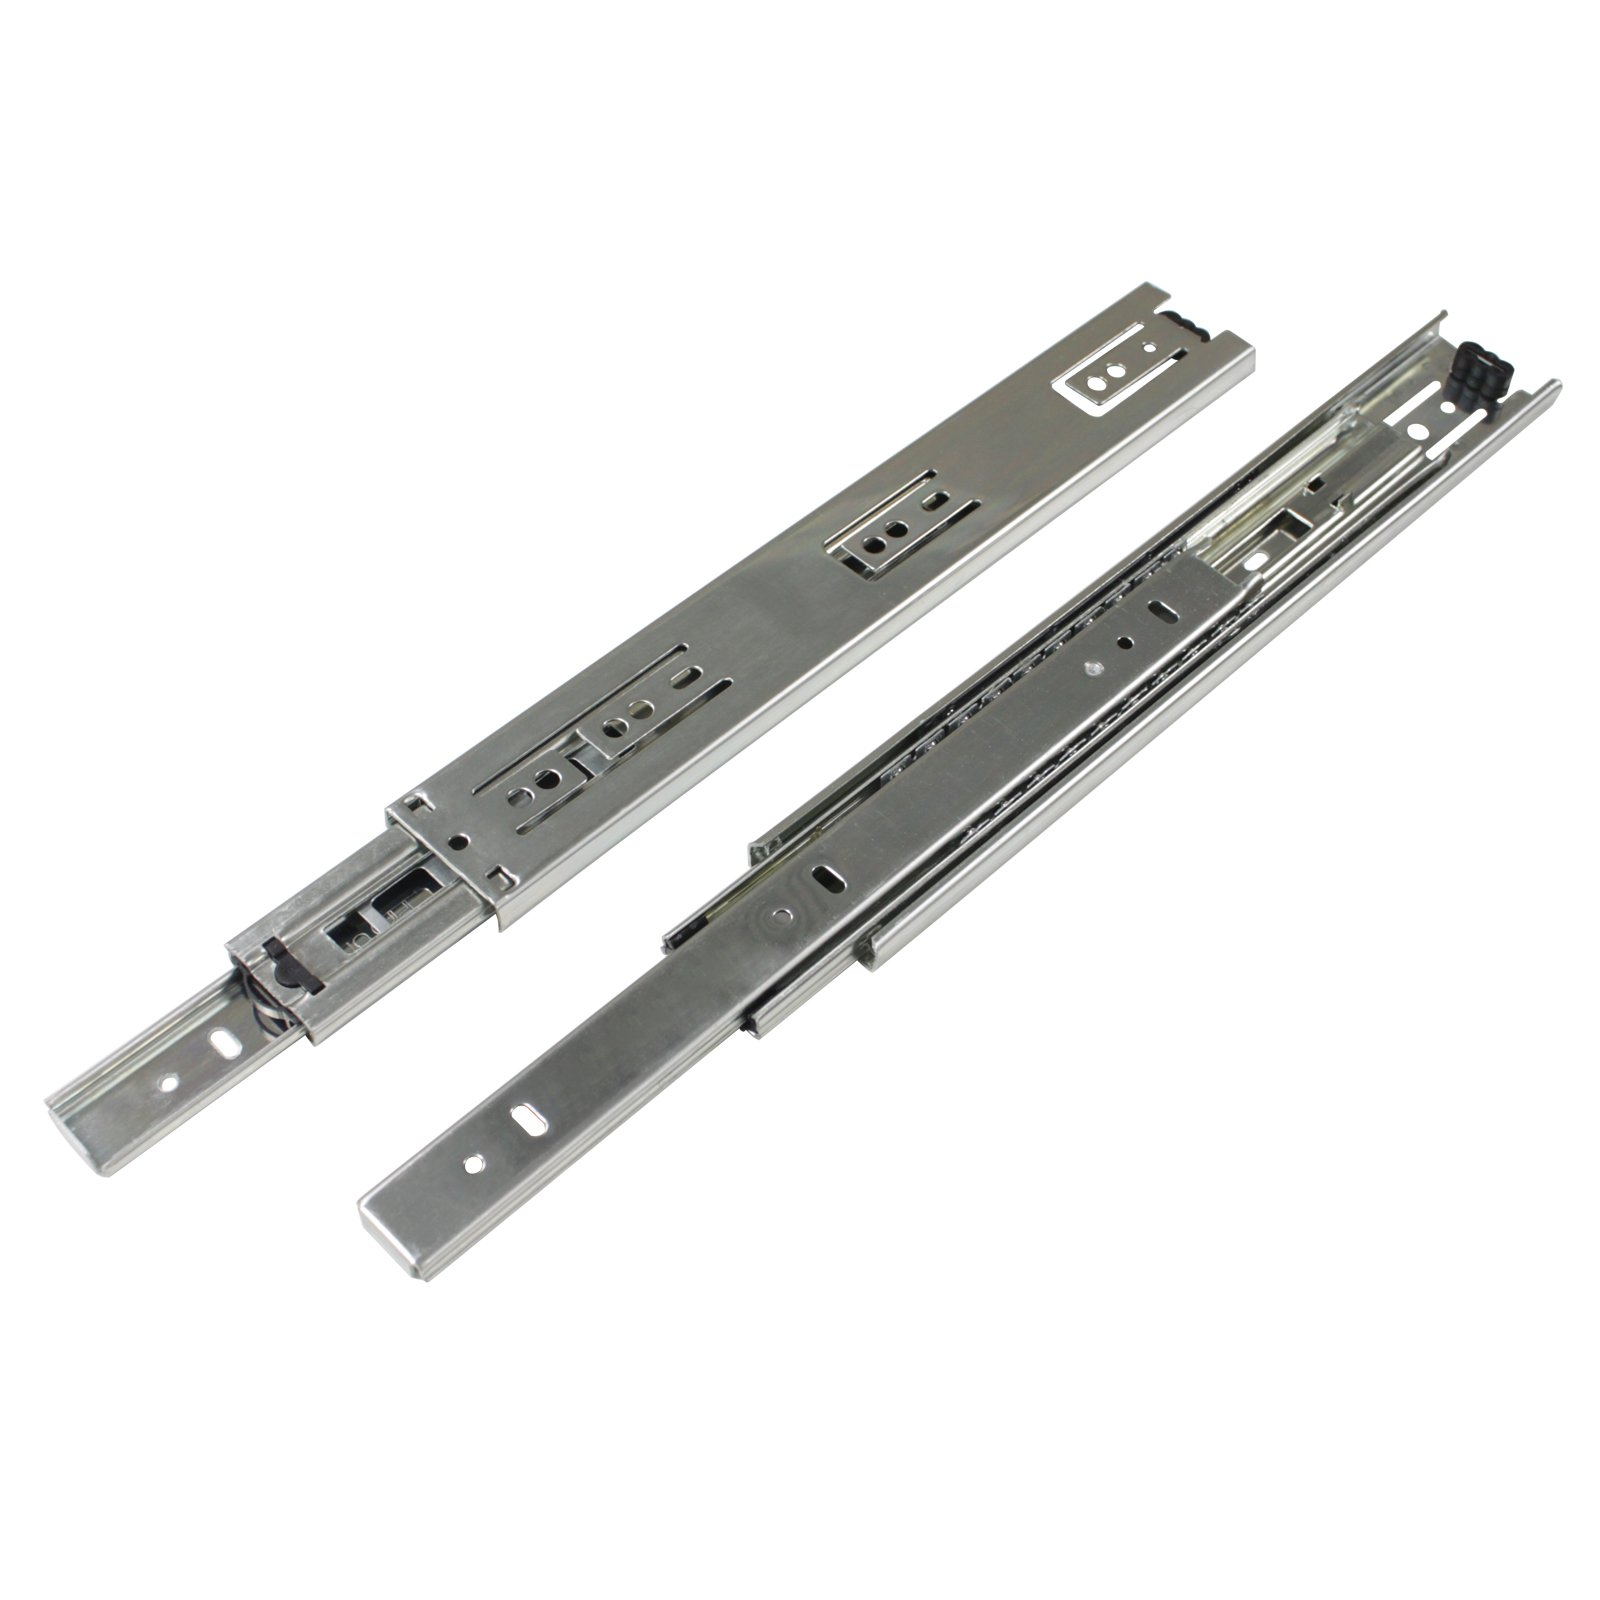 2 Pairs 22 inch Full Extension Side Mount Drawer Slides 3-Folds Ball Bearing Heavy Duty 100 lb Thickness:1.01.01.2mm by Probrico (Image #6)